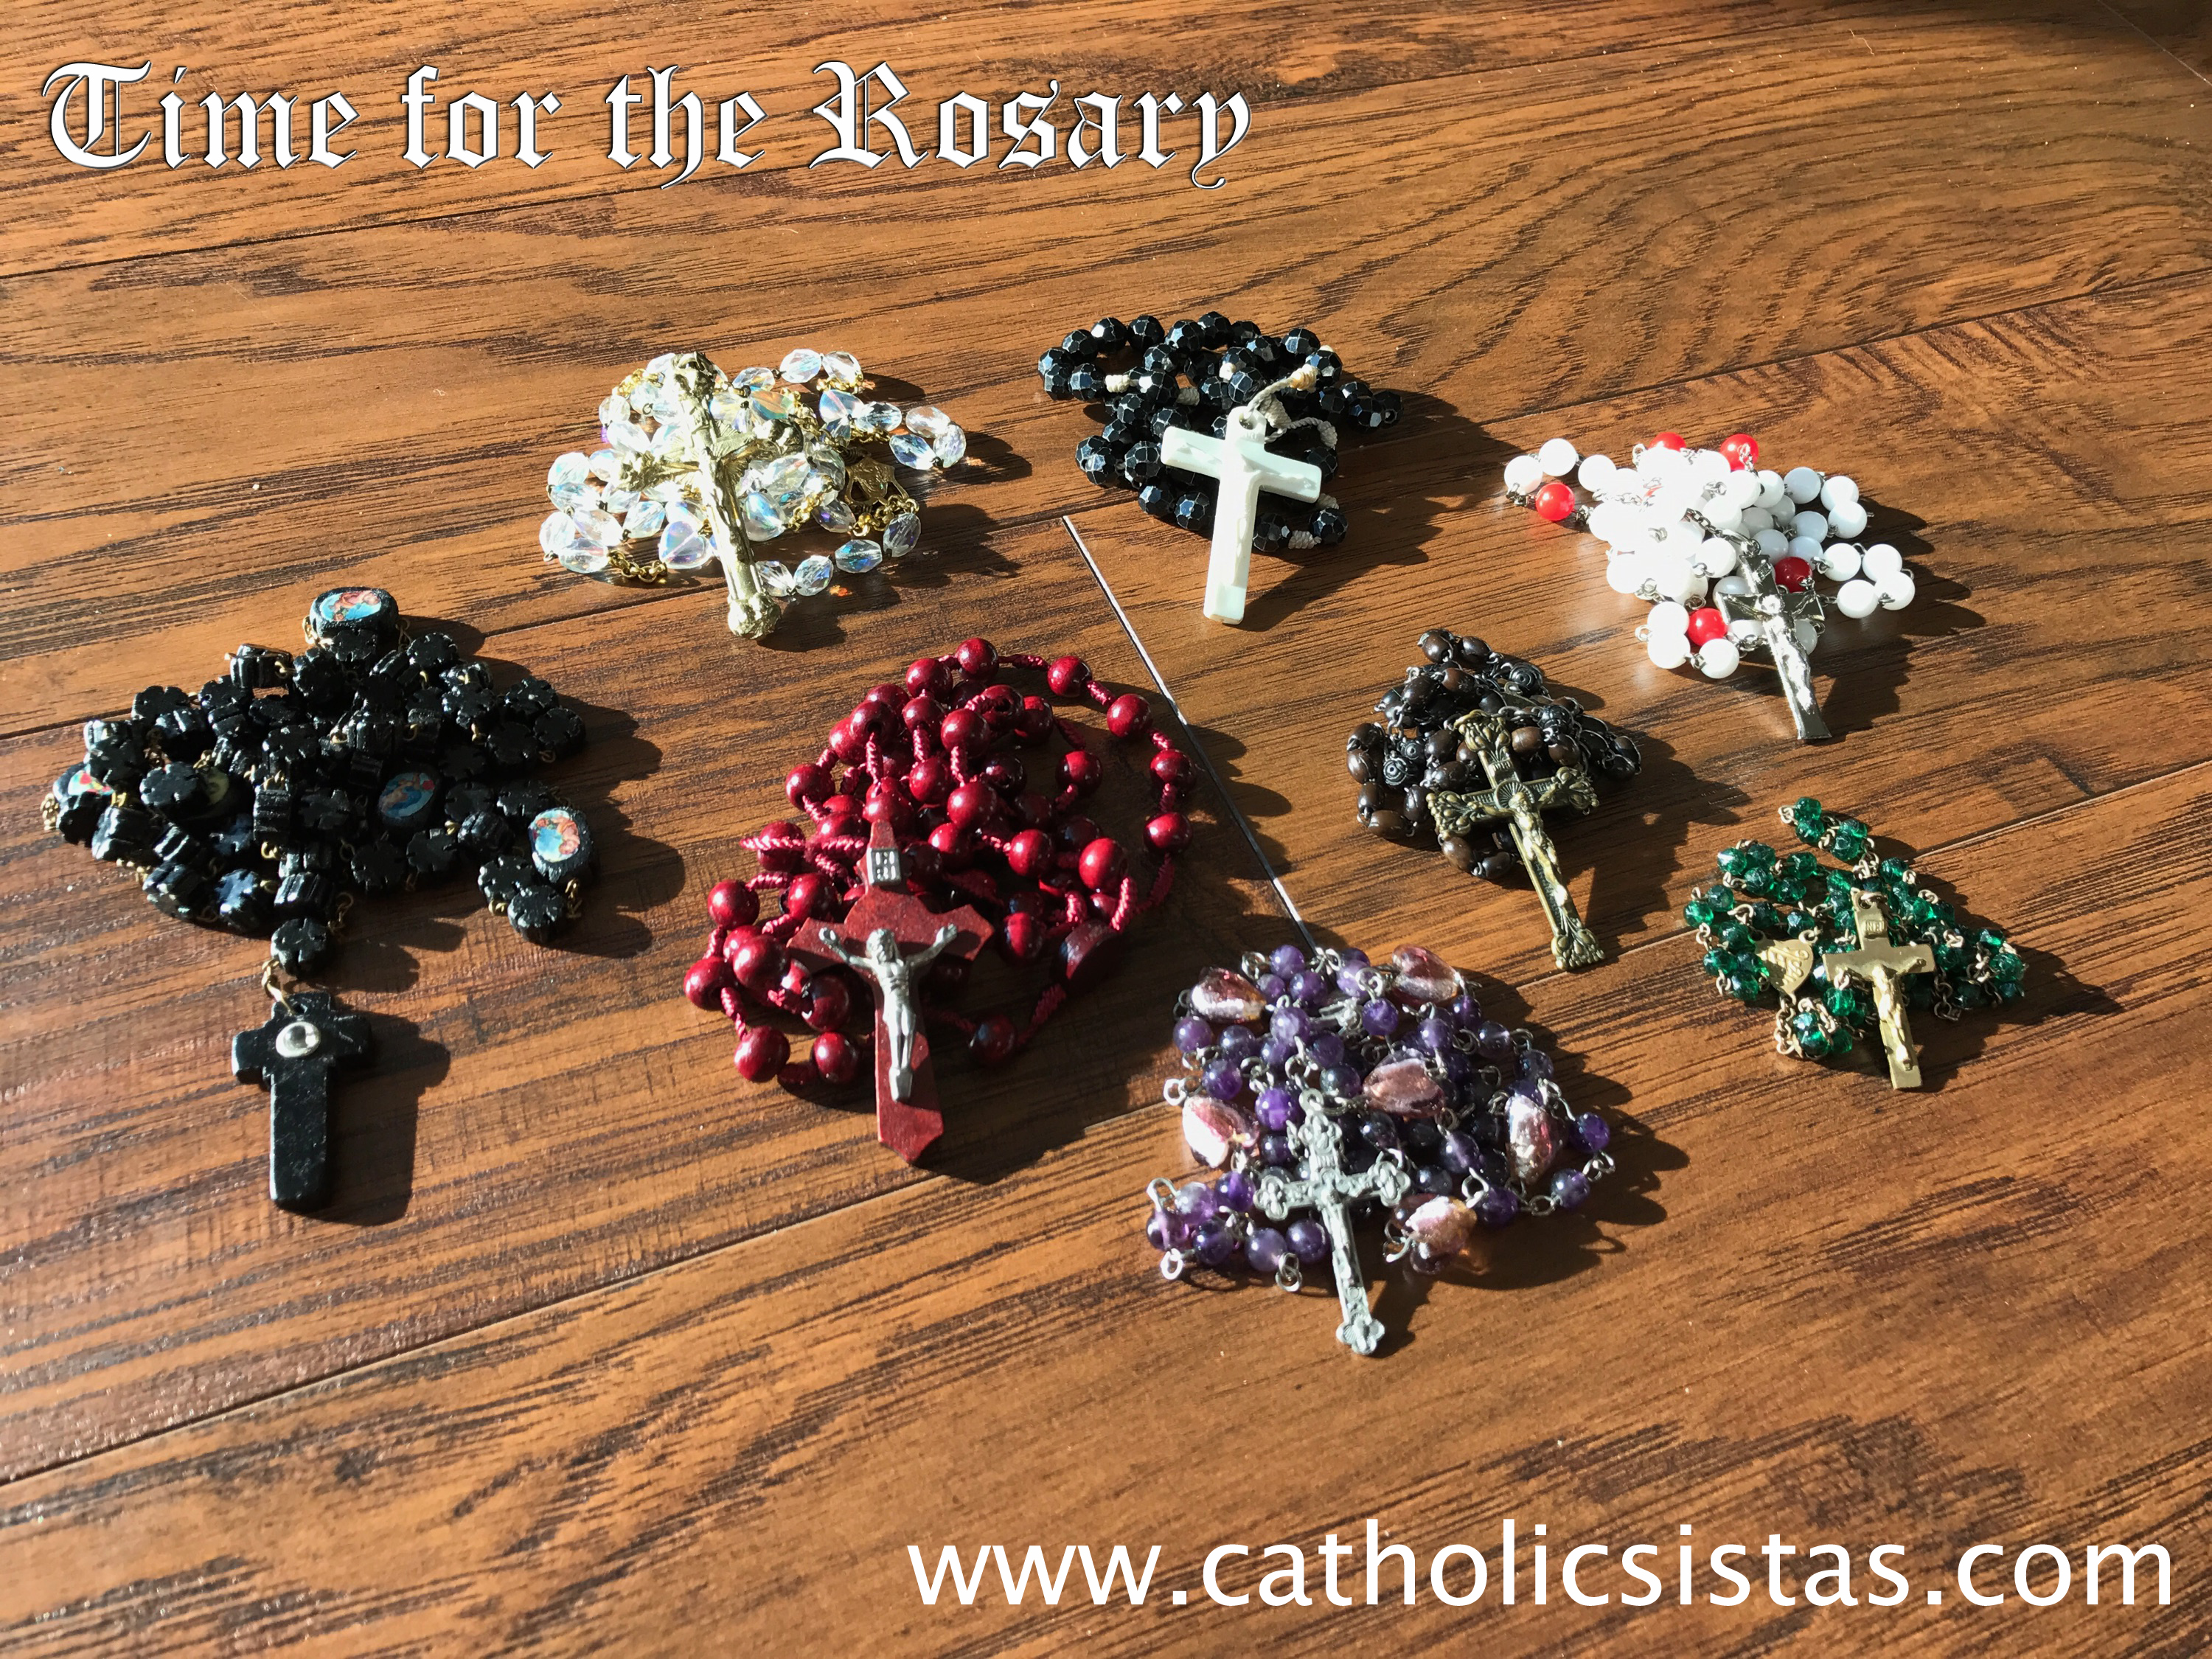 Time for the Rosary